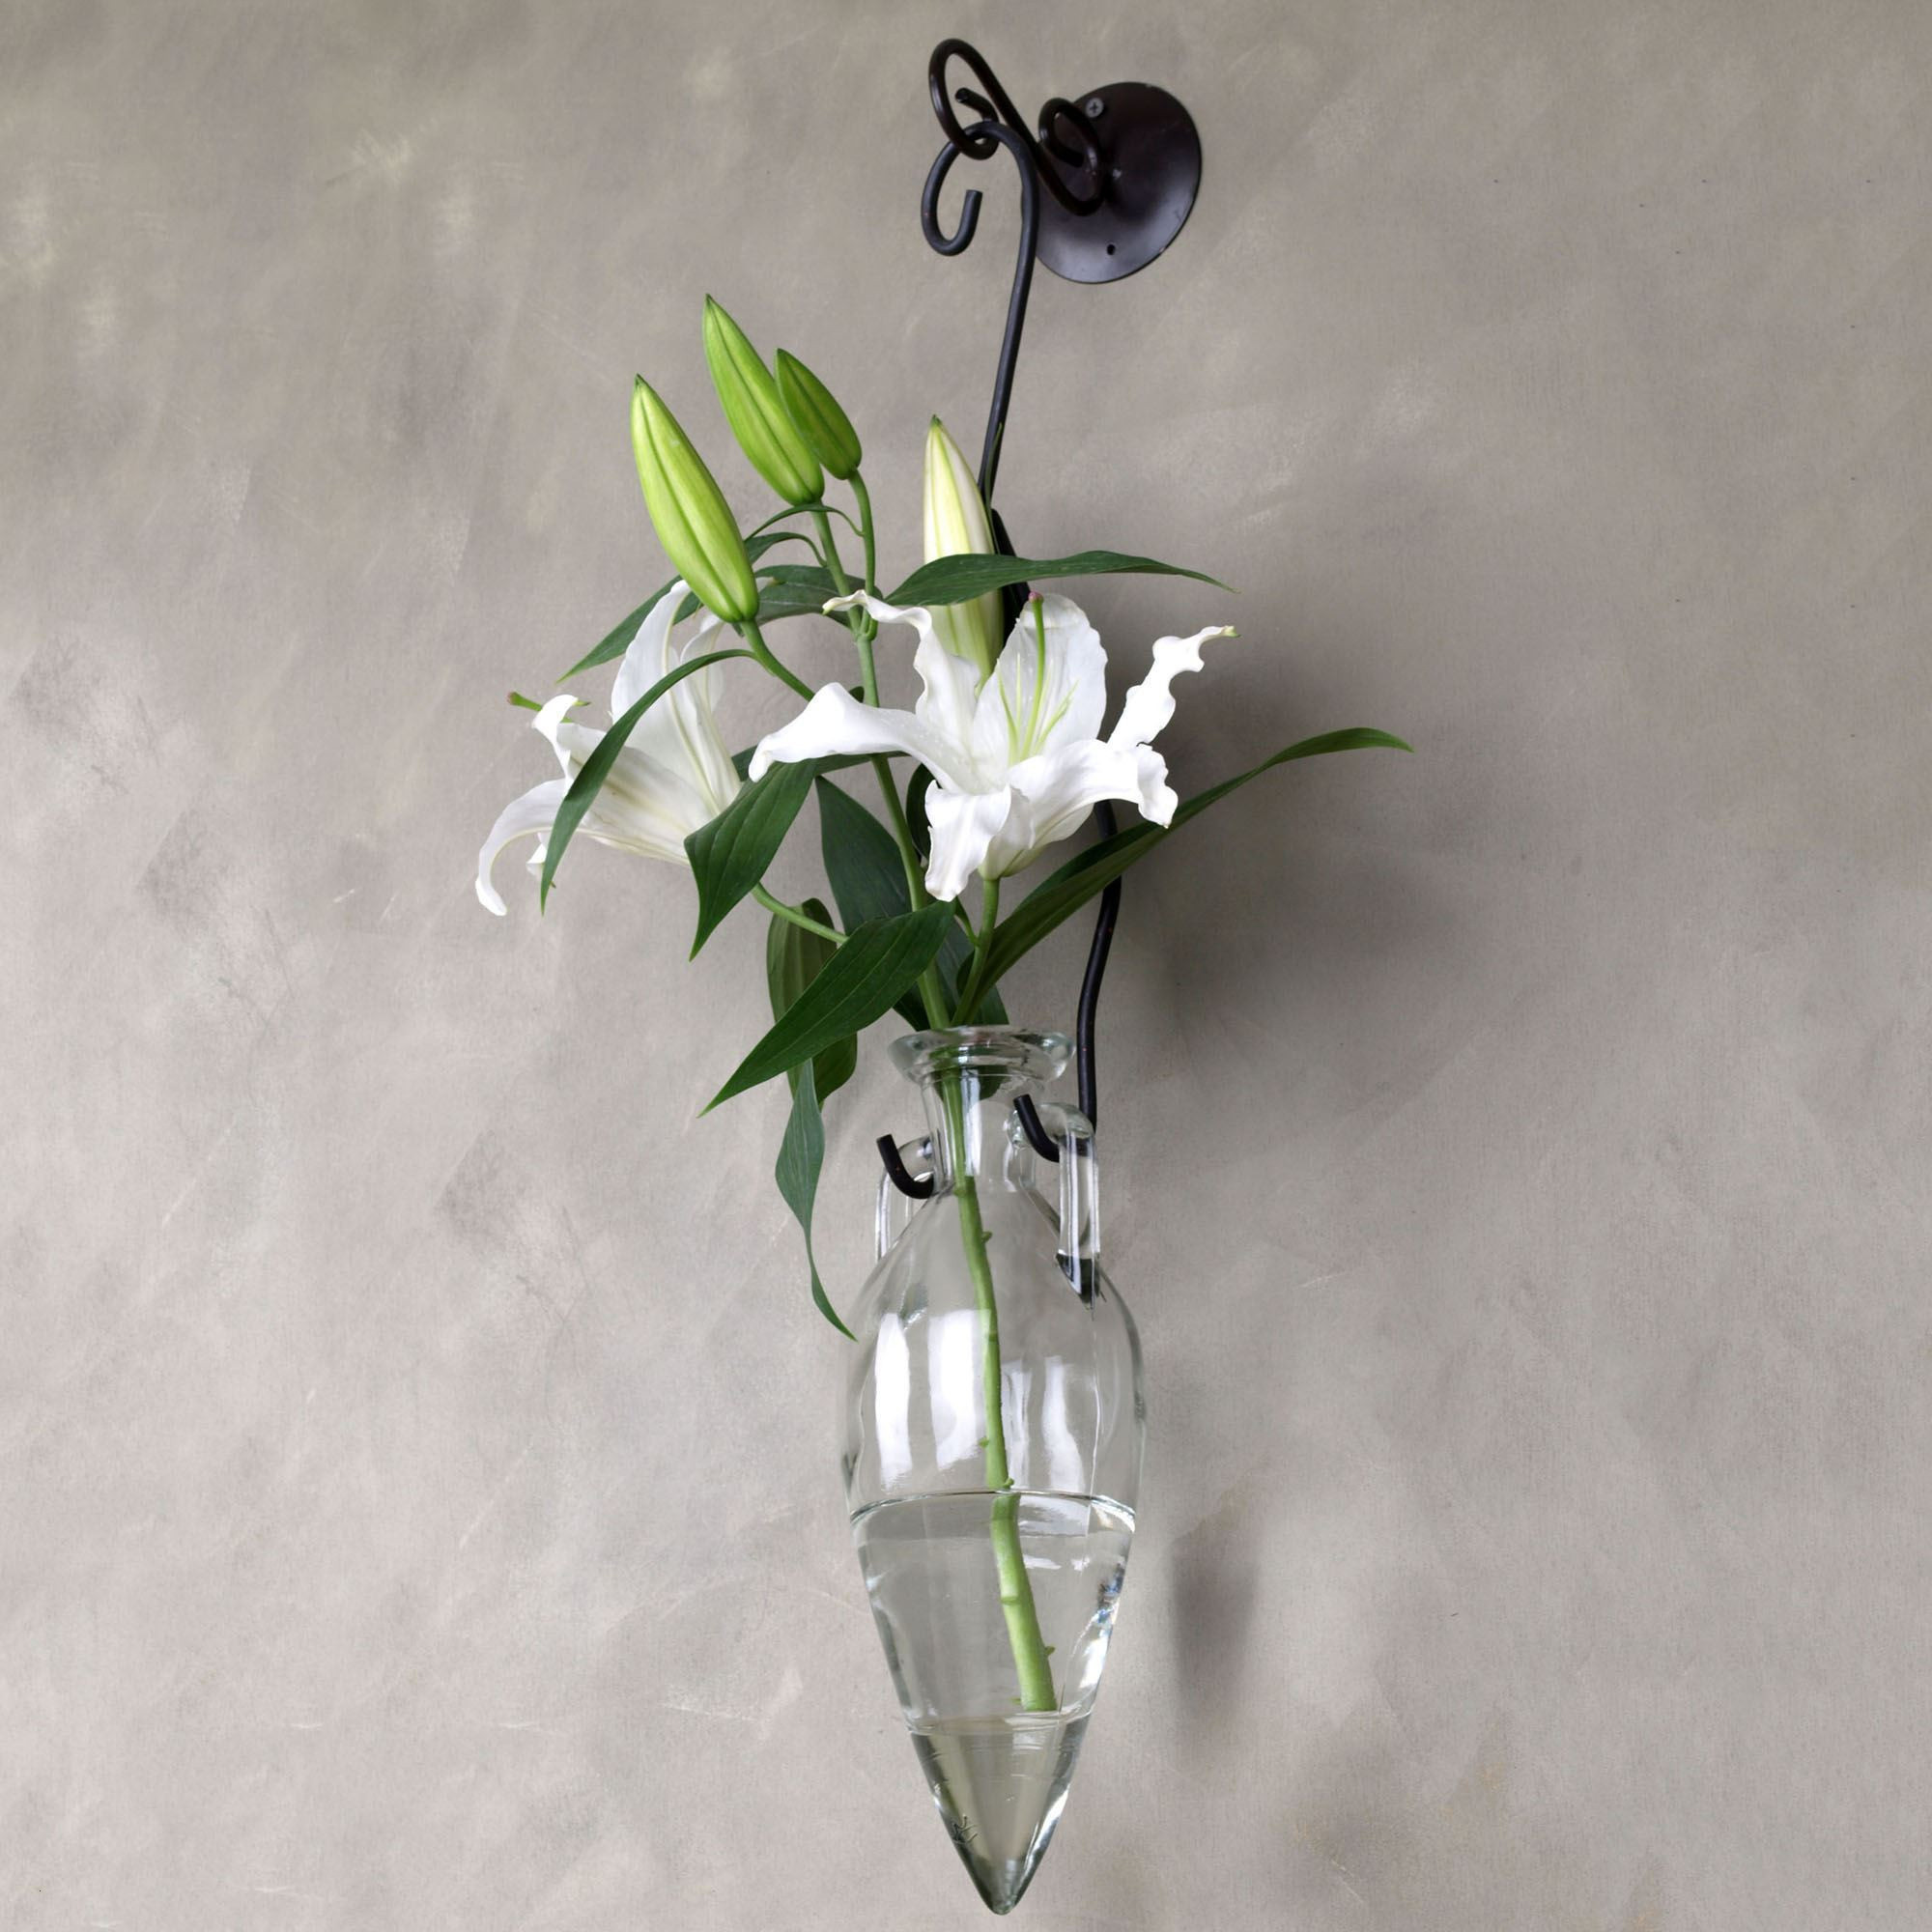 Pottery Barn Wall Vase Of Flower Wall Decoration Popular Wedding Wall Decor Unique H Vases In Flower Wall Decoration Popular Wedding Wall Decor Unique H Vases Wall Hanging Flower Vase Newspaper